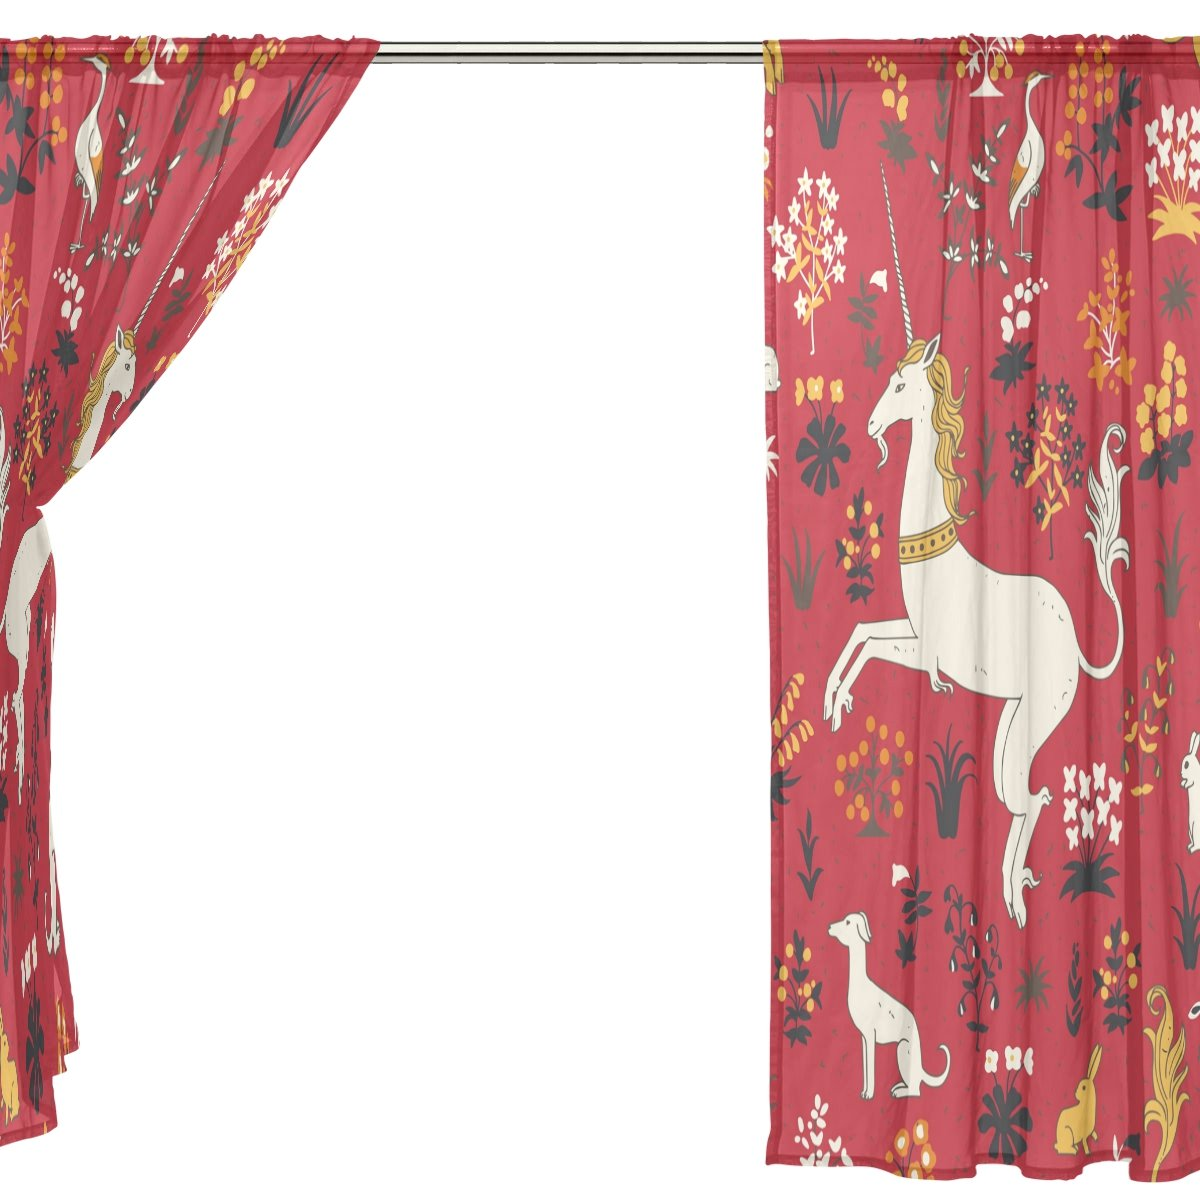 SEULIFE Window Sheer Curtain, Vintage Animal Unicorn Rabbit Flower Voile Curtain Drapes for Door Kitchen Living Room Bedroom 55x78 inches 2 Panels by SEULIFE (Image #4)